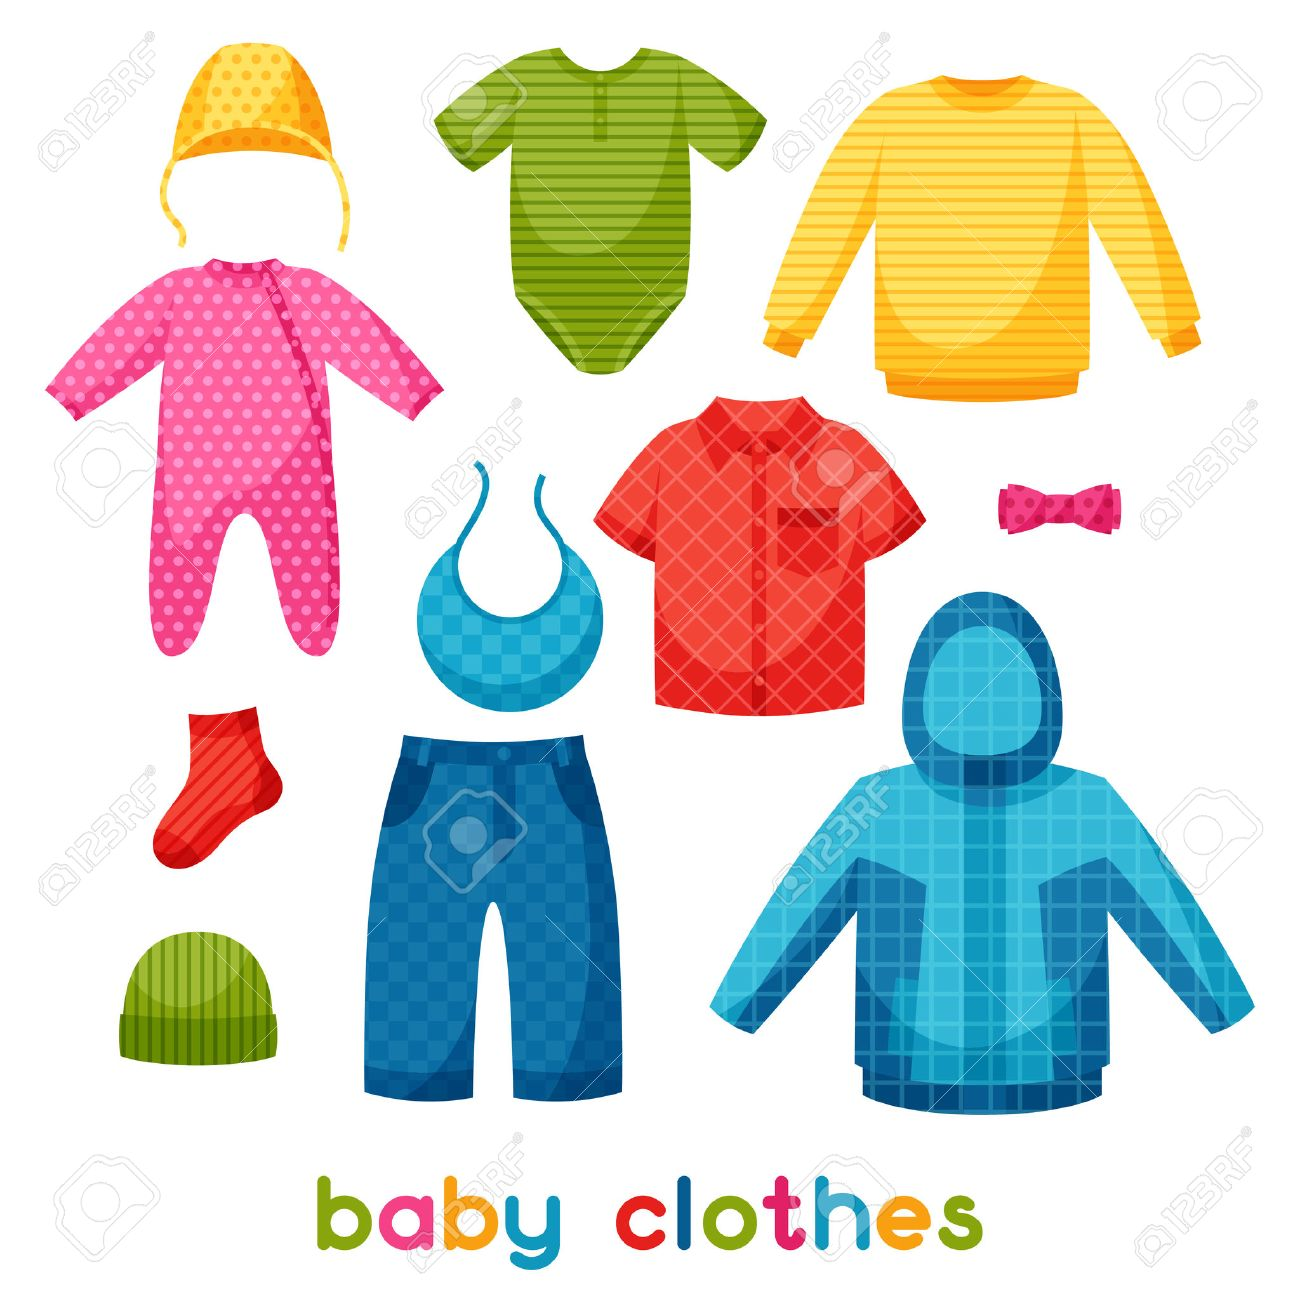 Baby Clothes Set Of Clothing Items For Newborns And Children